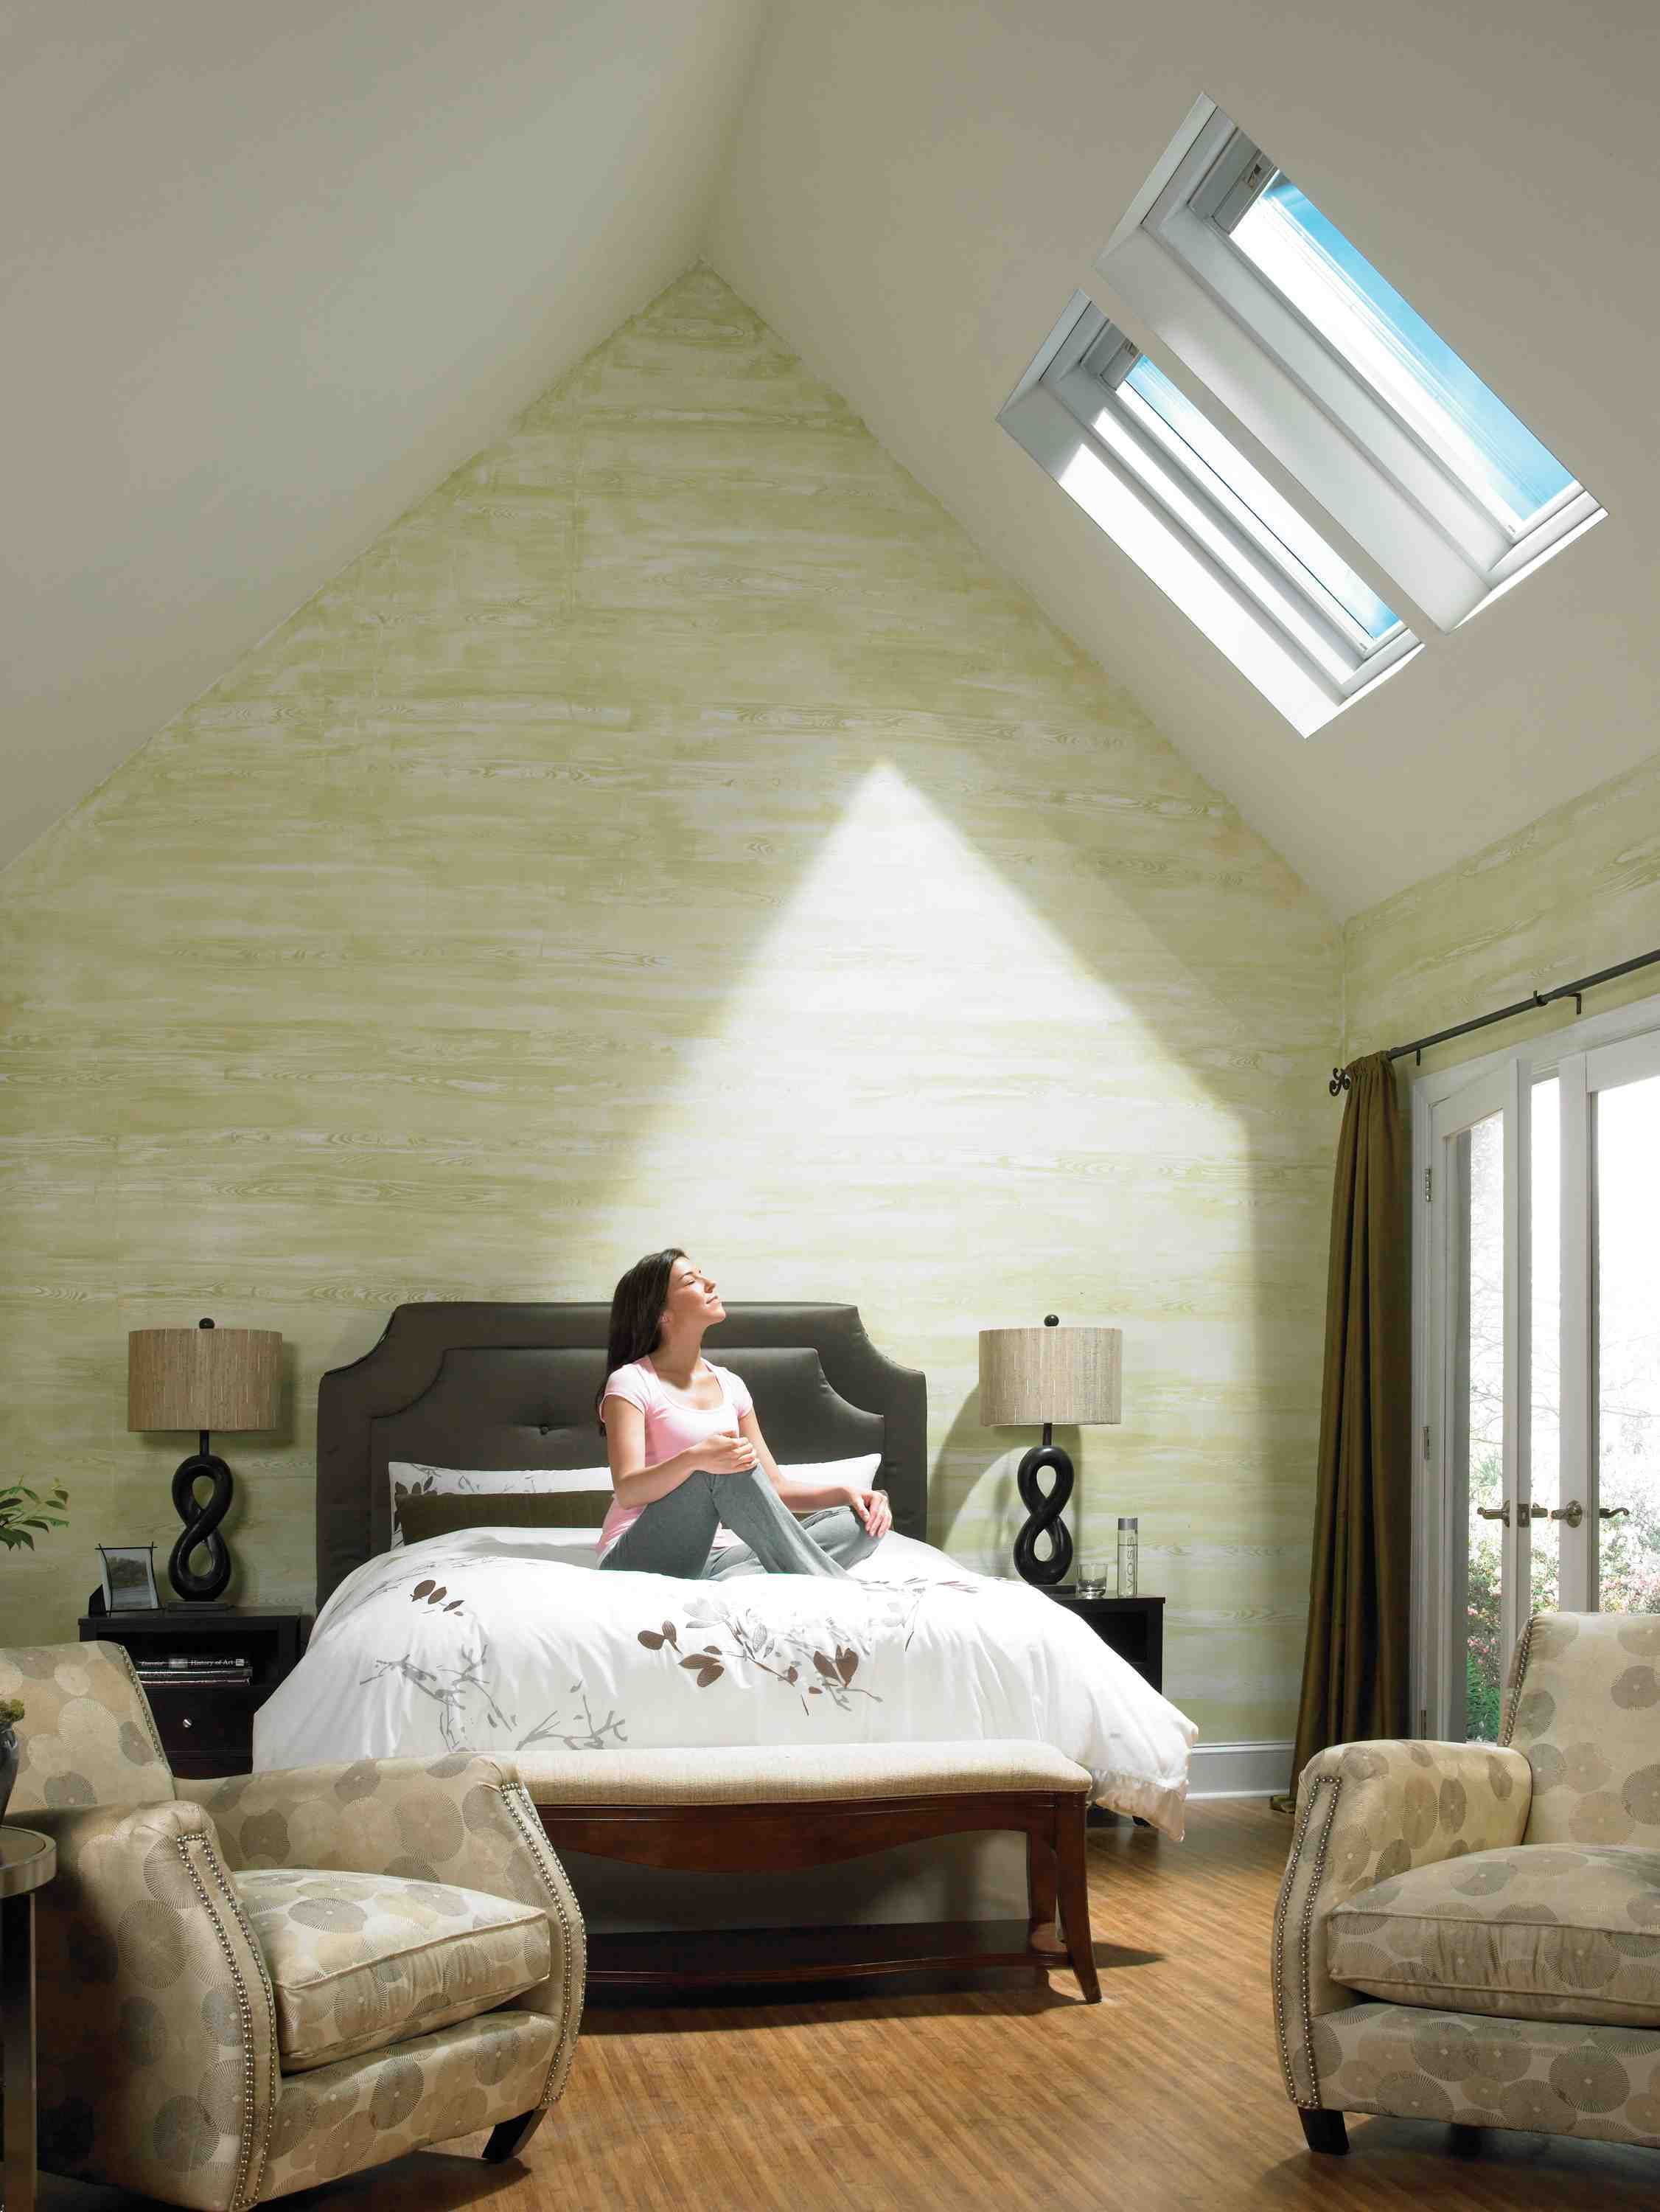 Bedroom Skylight Living Room For Sunlight Attic Bedroom Interior